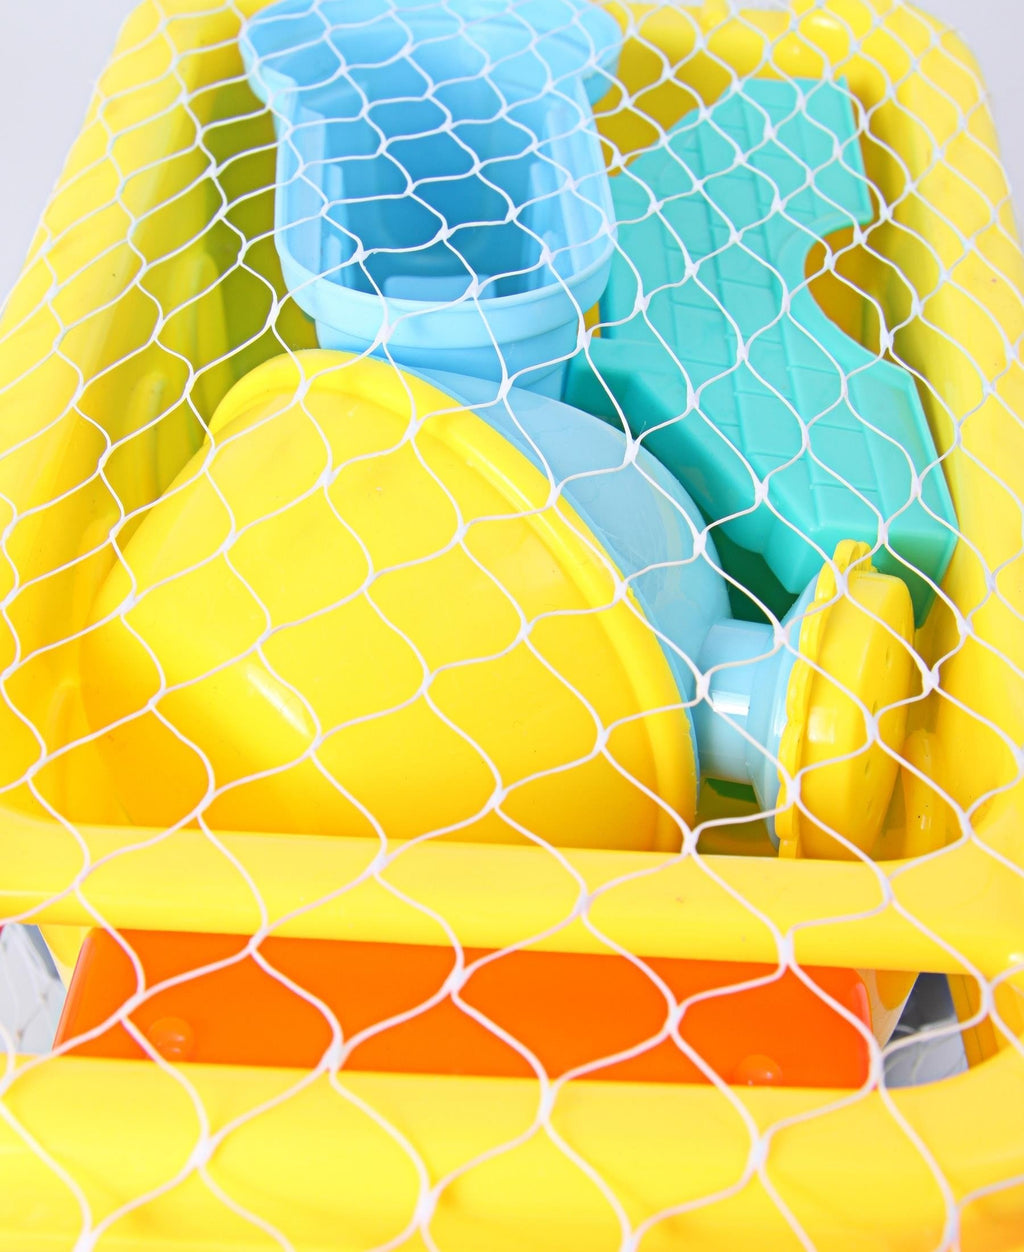 6 Piece Truck Beach Set - Yellow